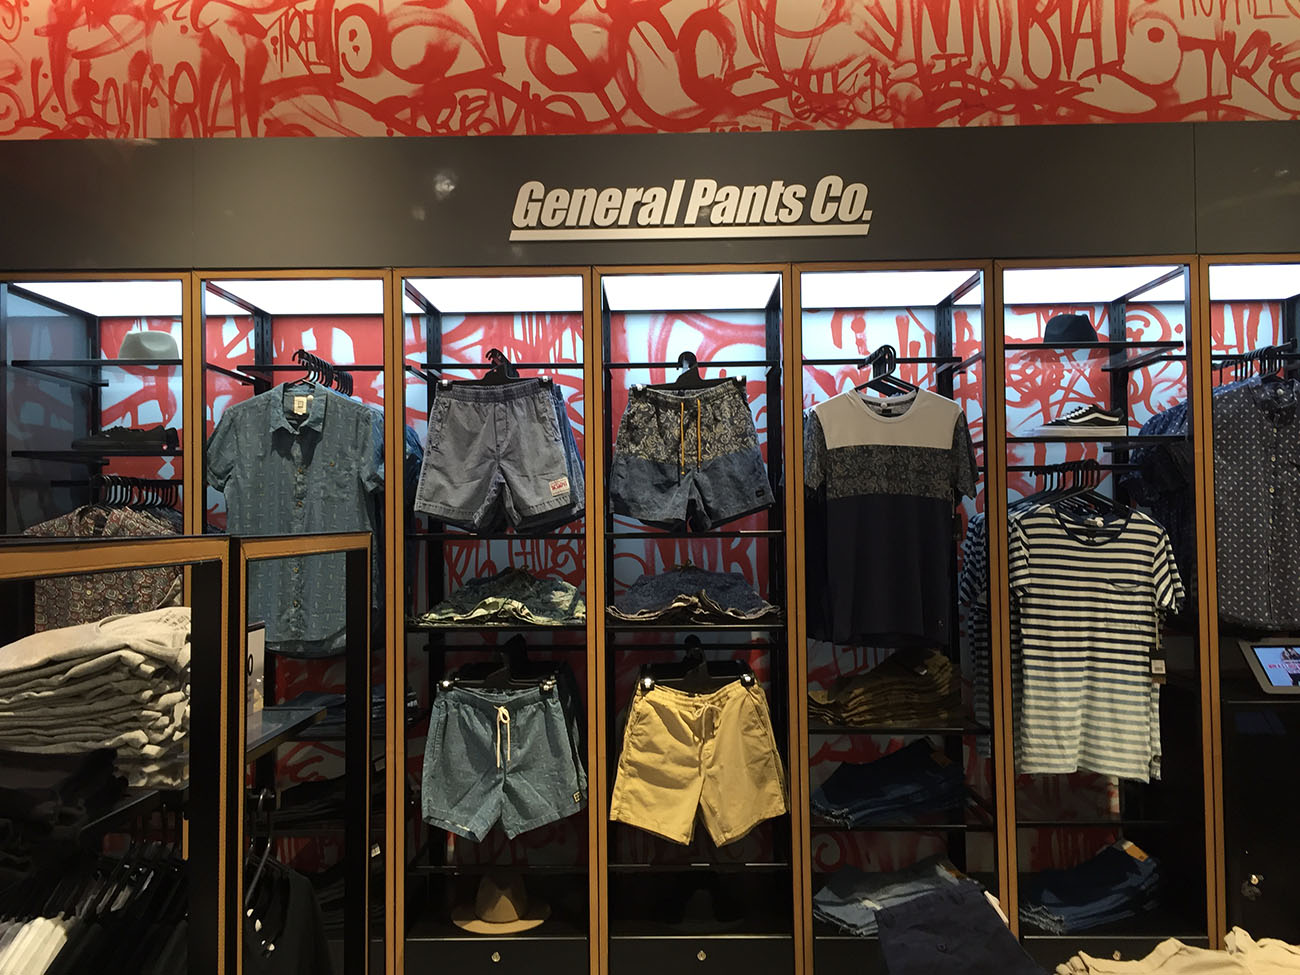 Clothes in a store with graffiti wall behind